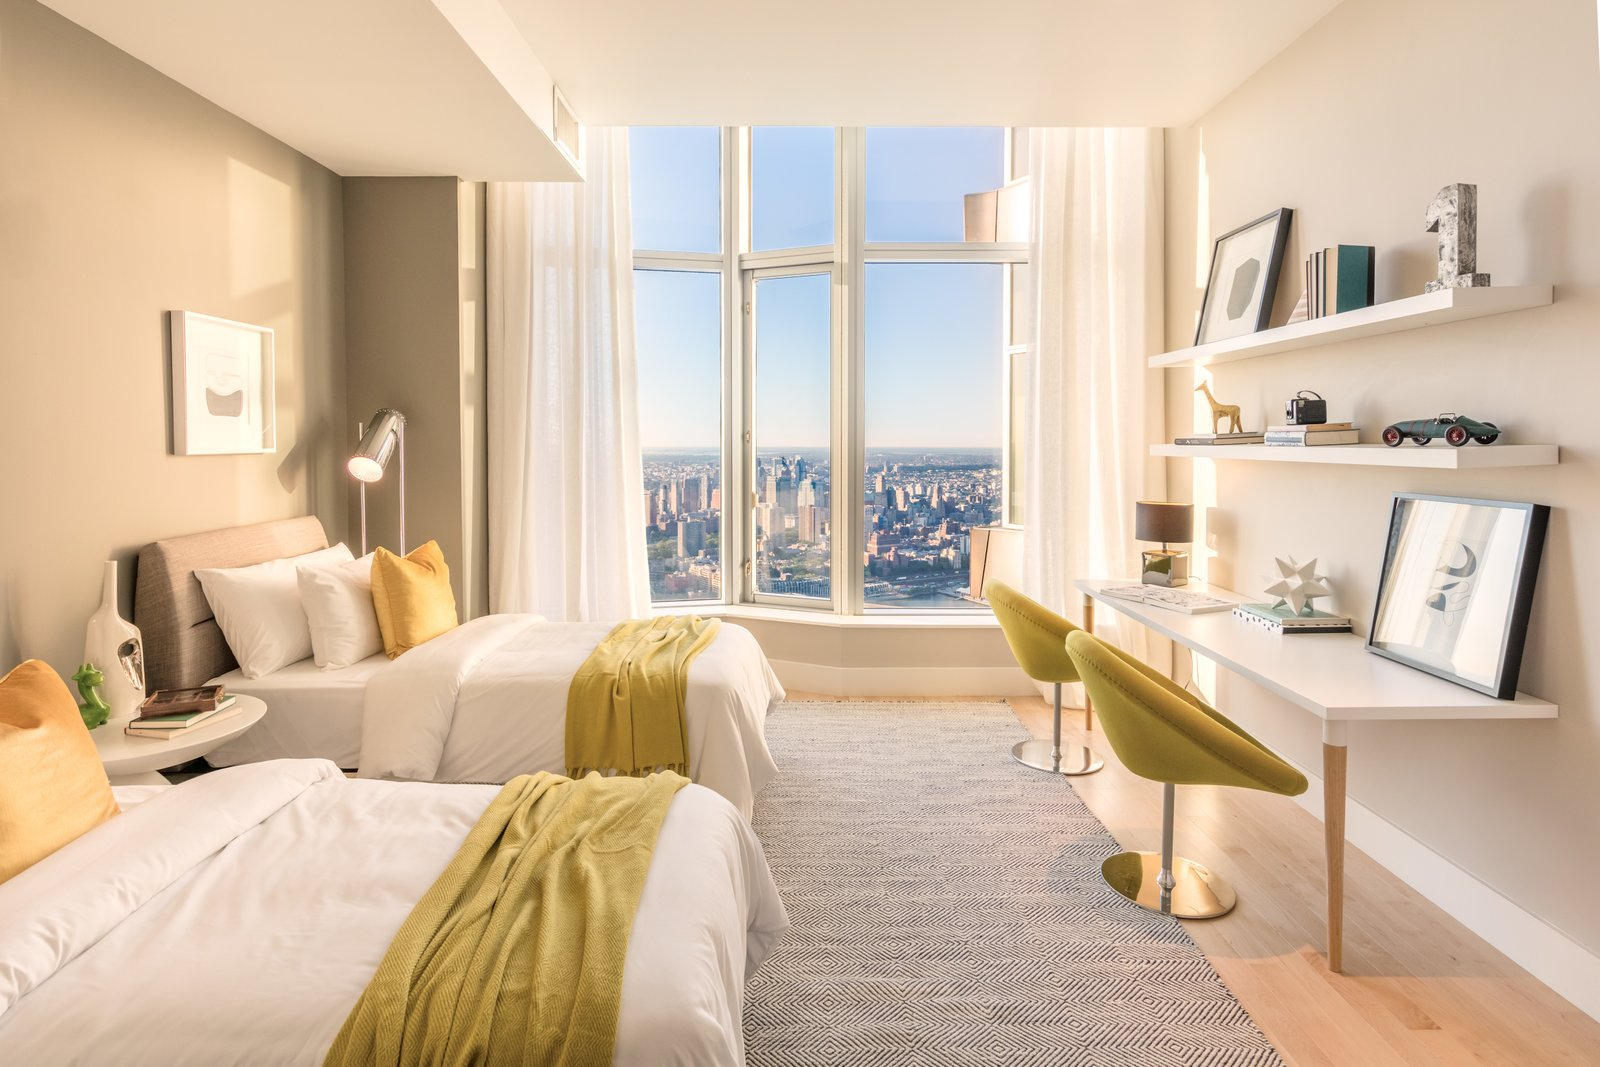 Photo 8 of 9 in Tour This Frank Gehry-Designed Penthouse in NYC That's Back on the Market